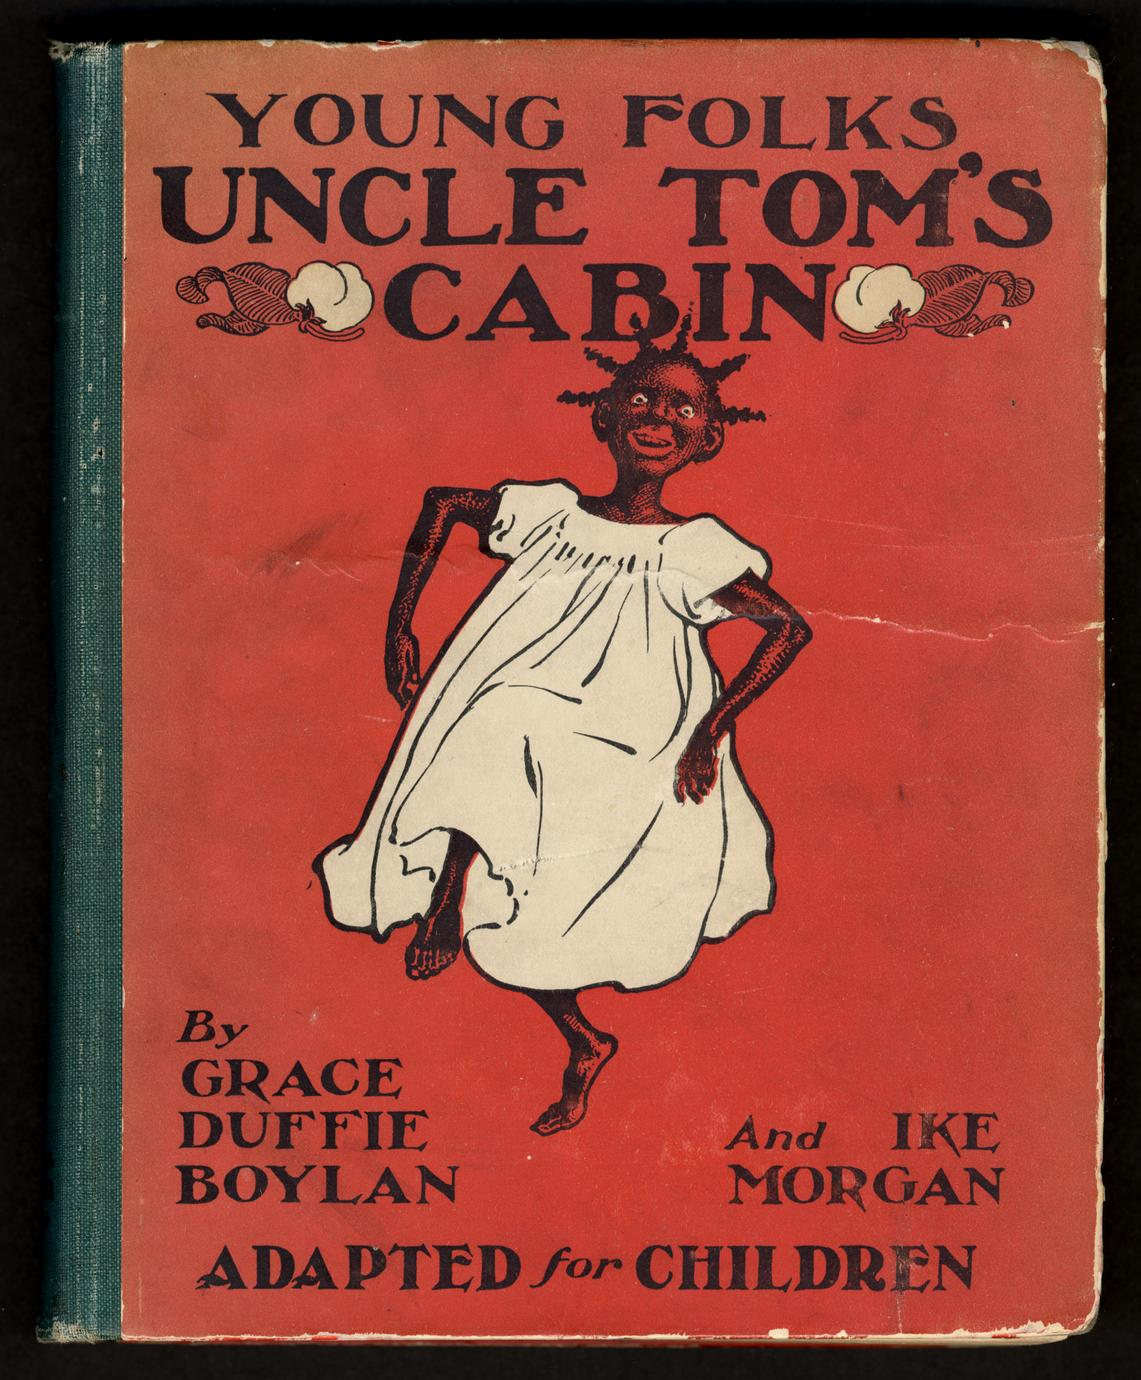 Young folks' Uncle Tom's cabin (1 of 3)